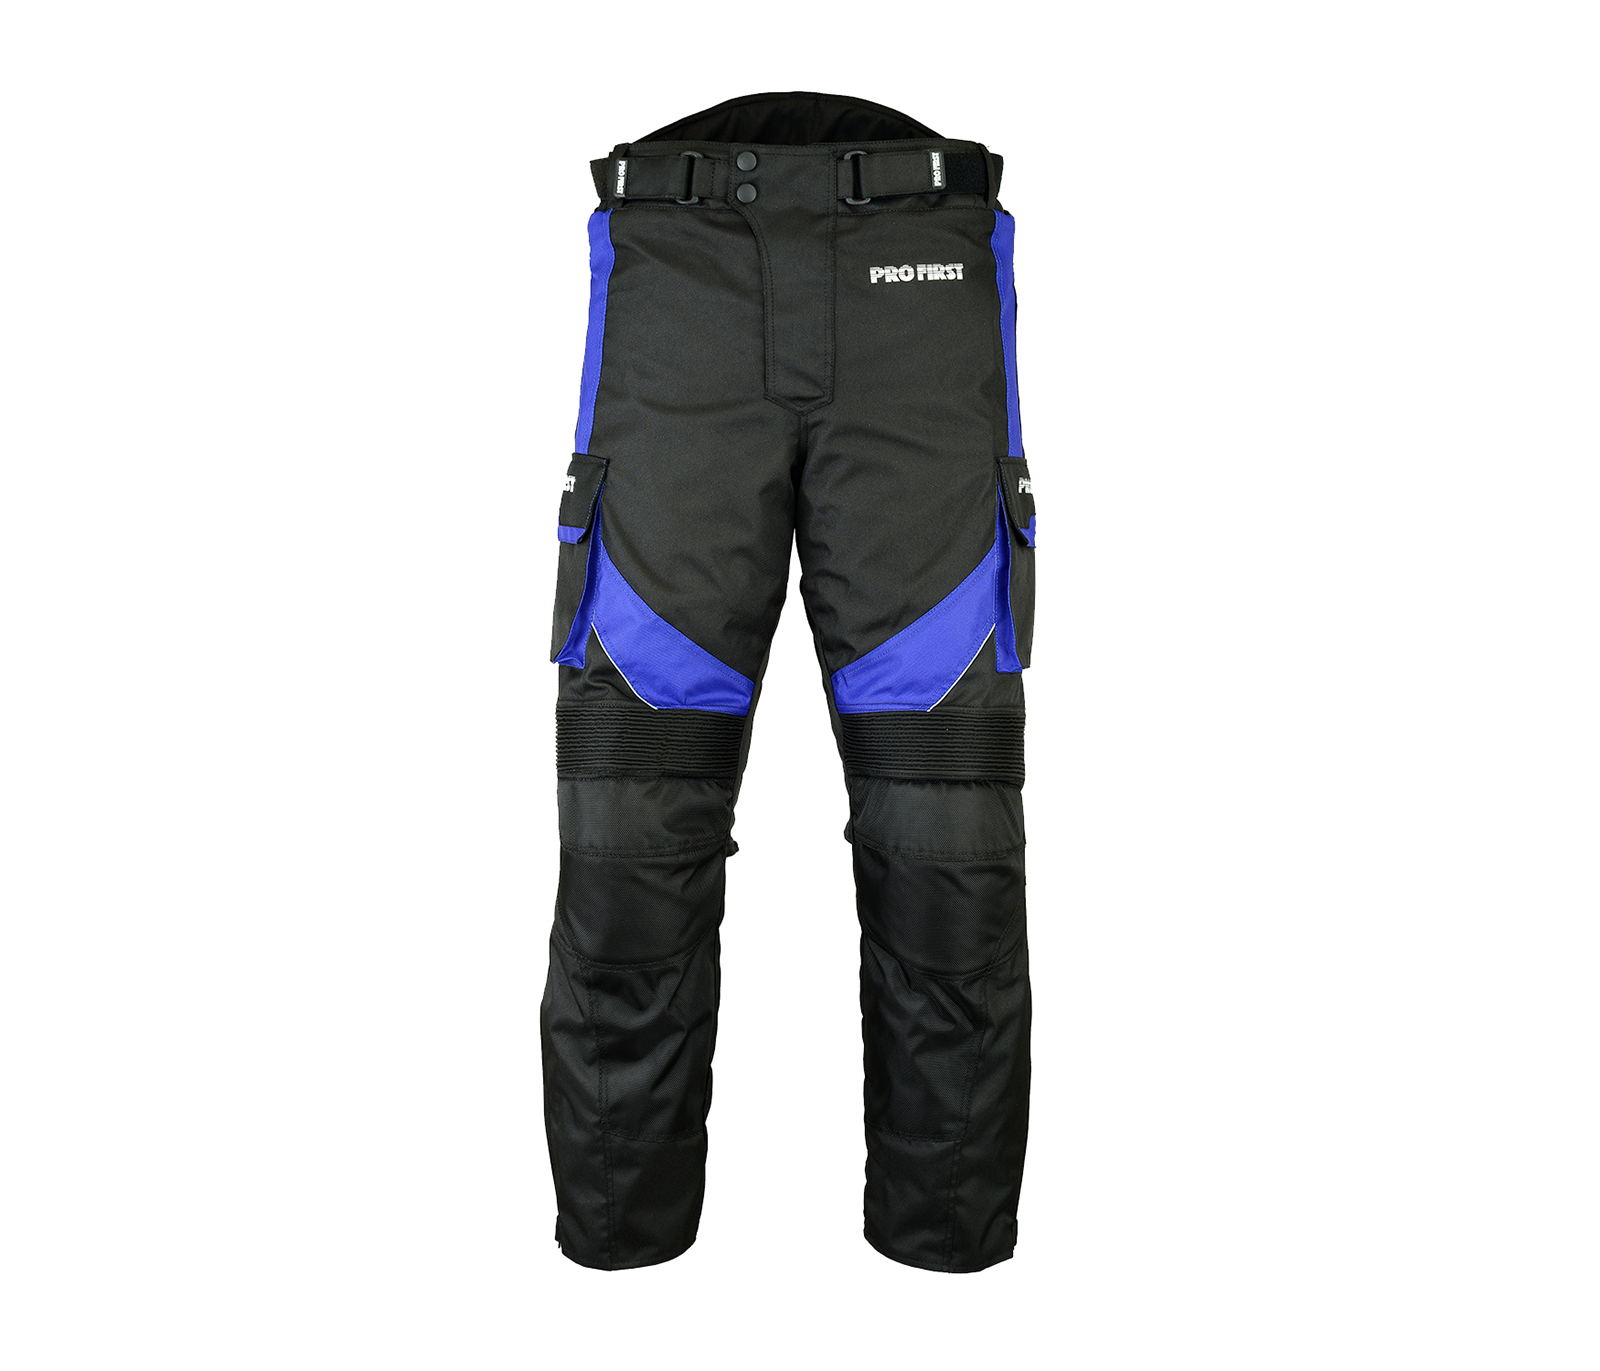 Removable Lining PROFIRST TR-001 Green - XS to 4XL Long Length Inside Leg 32 inch Big Pocket Design CE Approved Armoured Motorbike Motorcycle Trouser Pant Waterproof